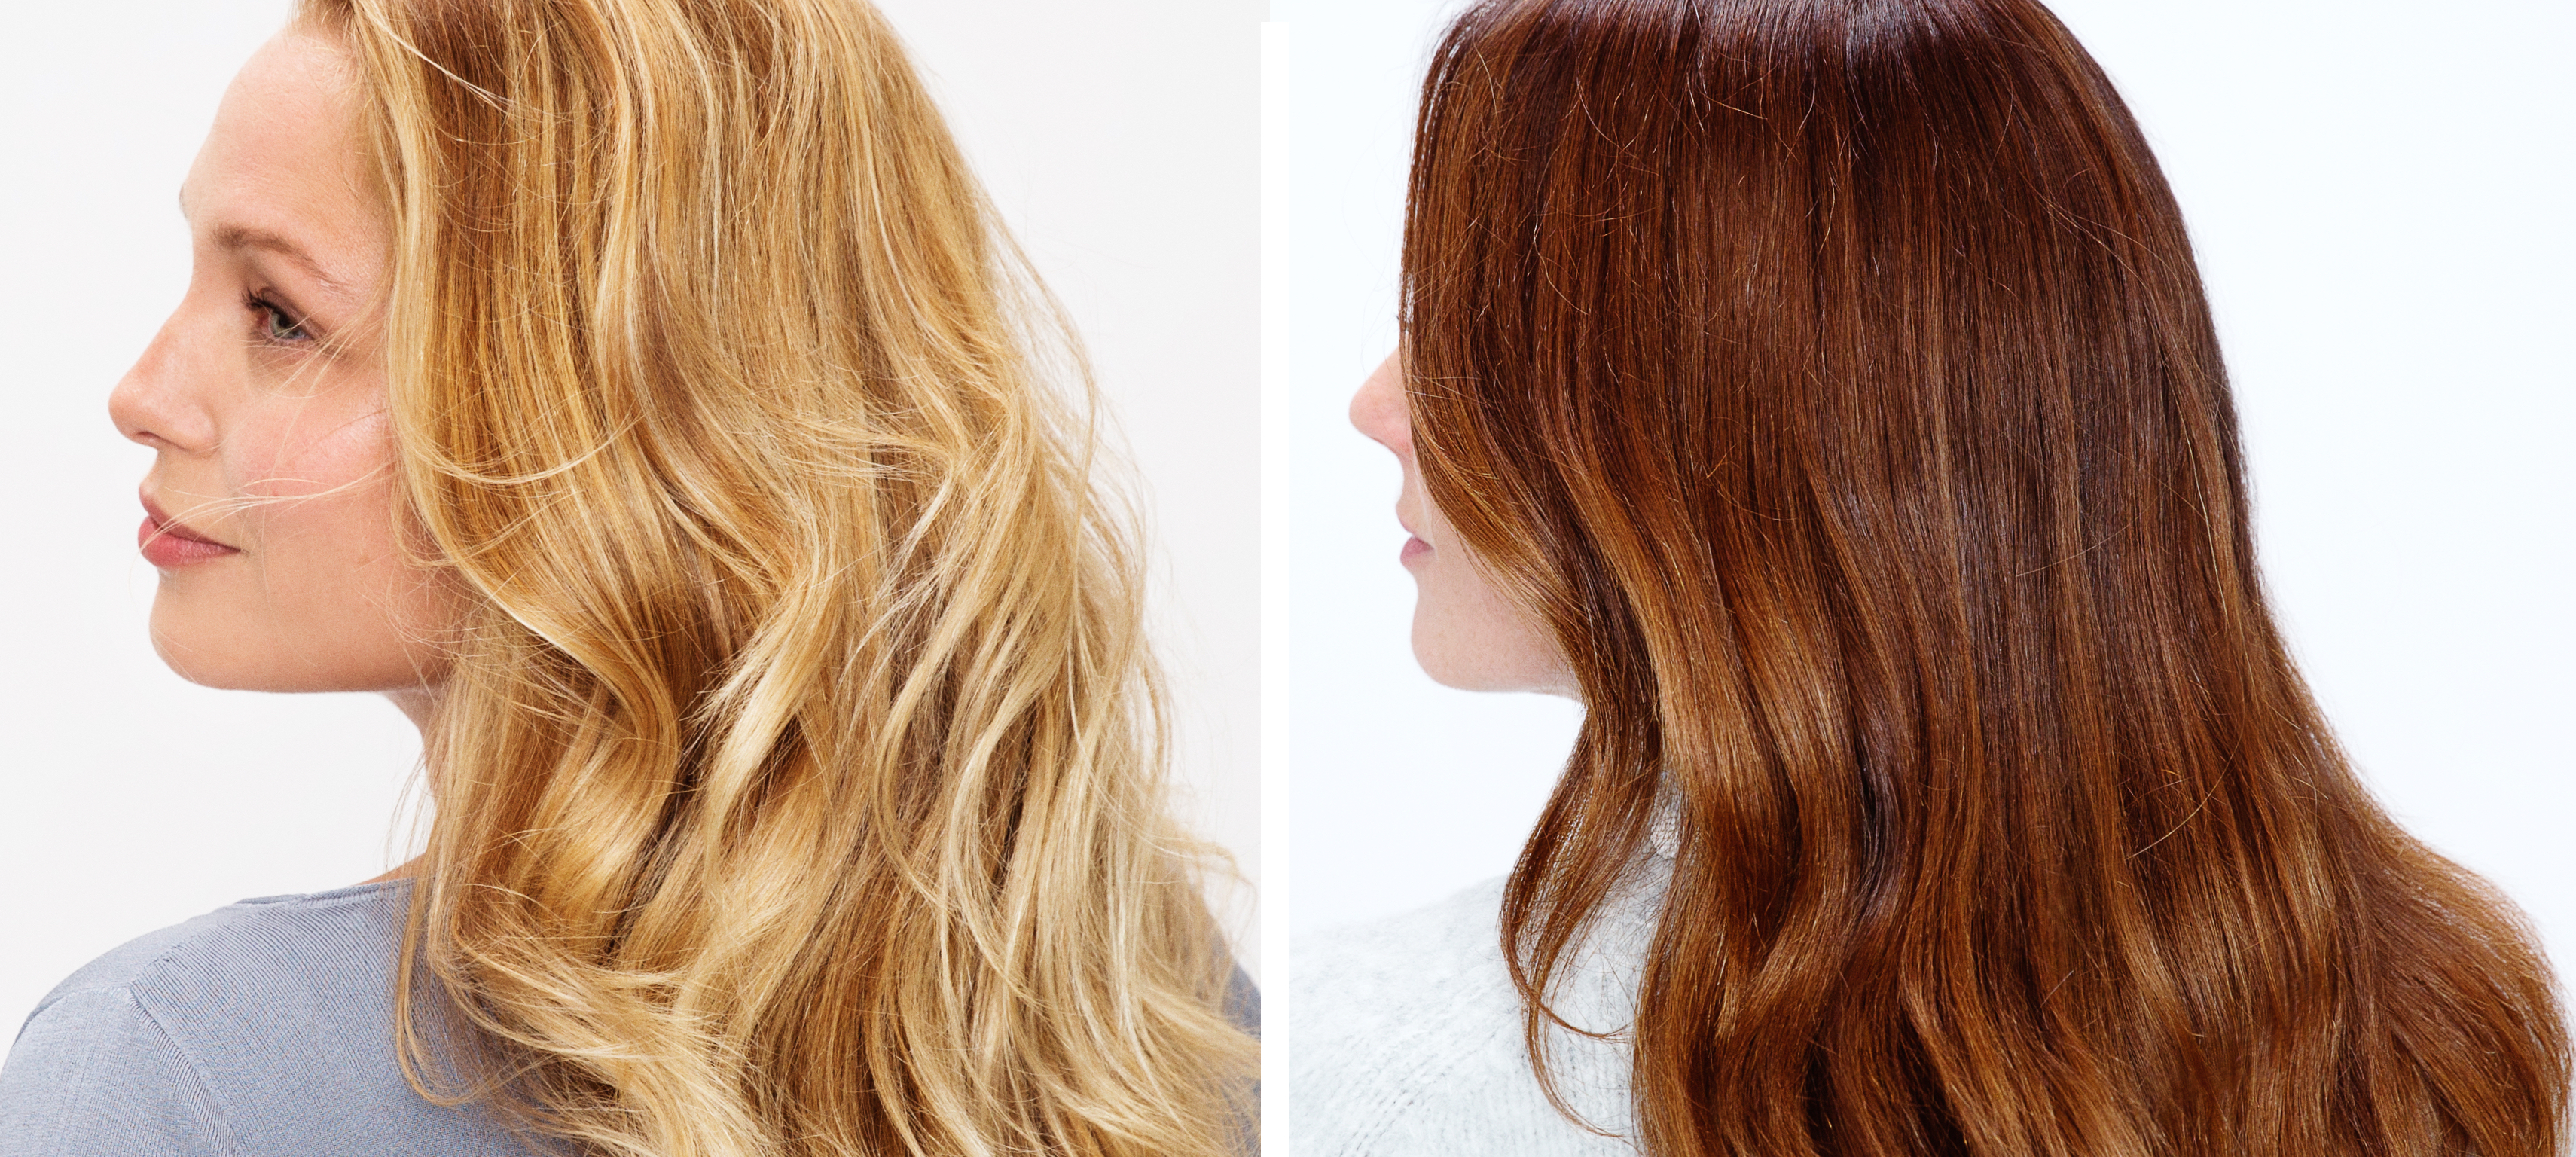 Hair Color In Style: Home Hair Color: How Light Or Dark Can You Go?